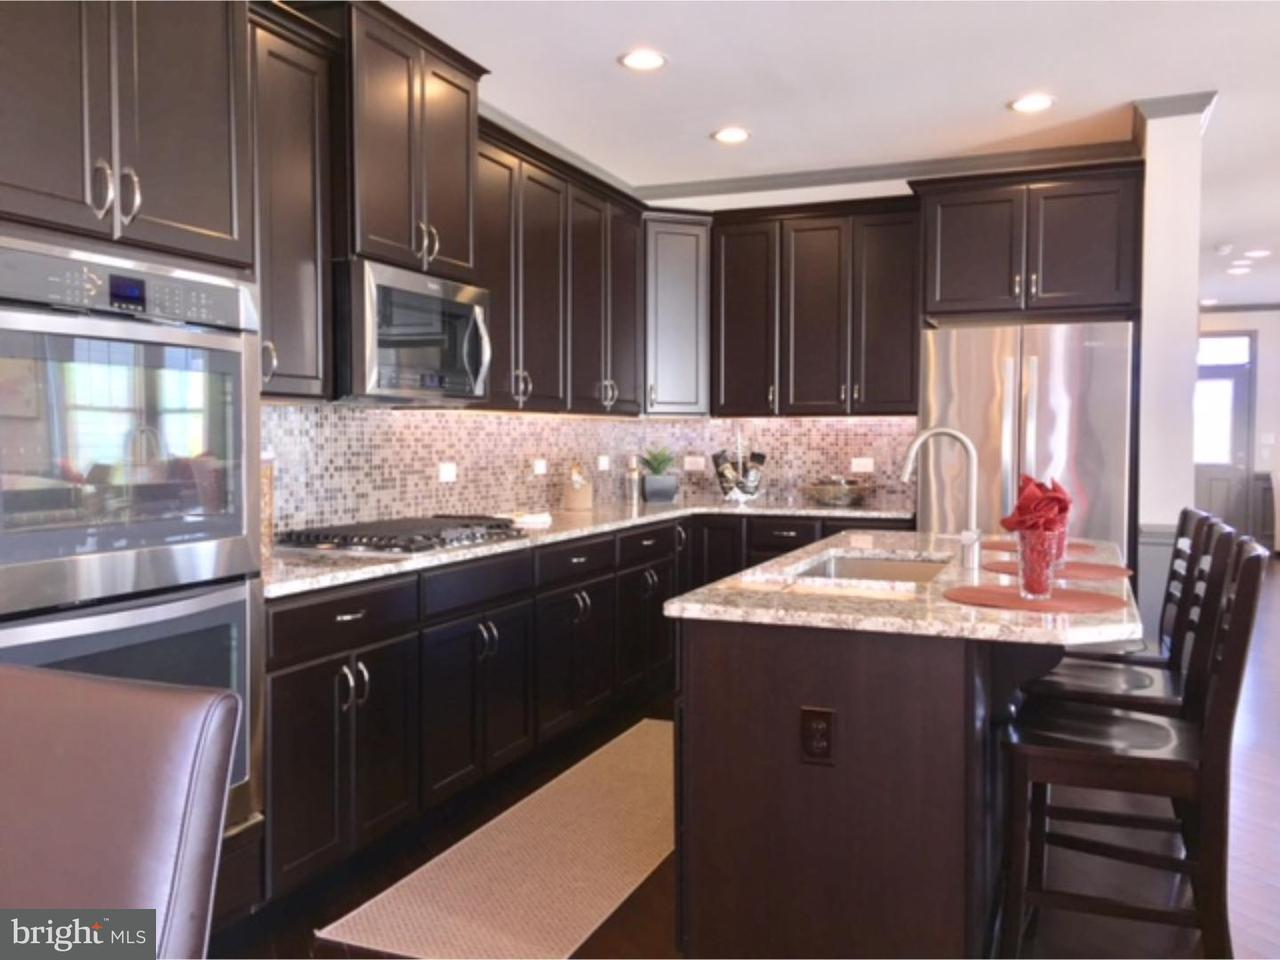 Additional photo for property listing at 133 SPRING OAK DR #0KIII  Malvern, Пенсильвания 19355 Соединенные Штаты